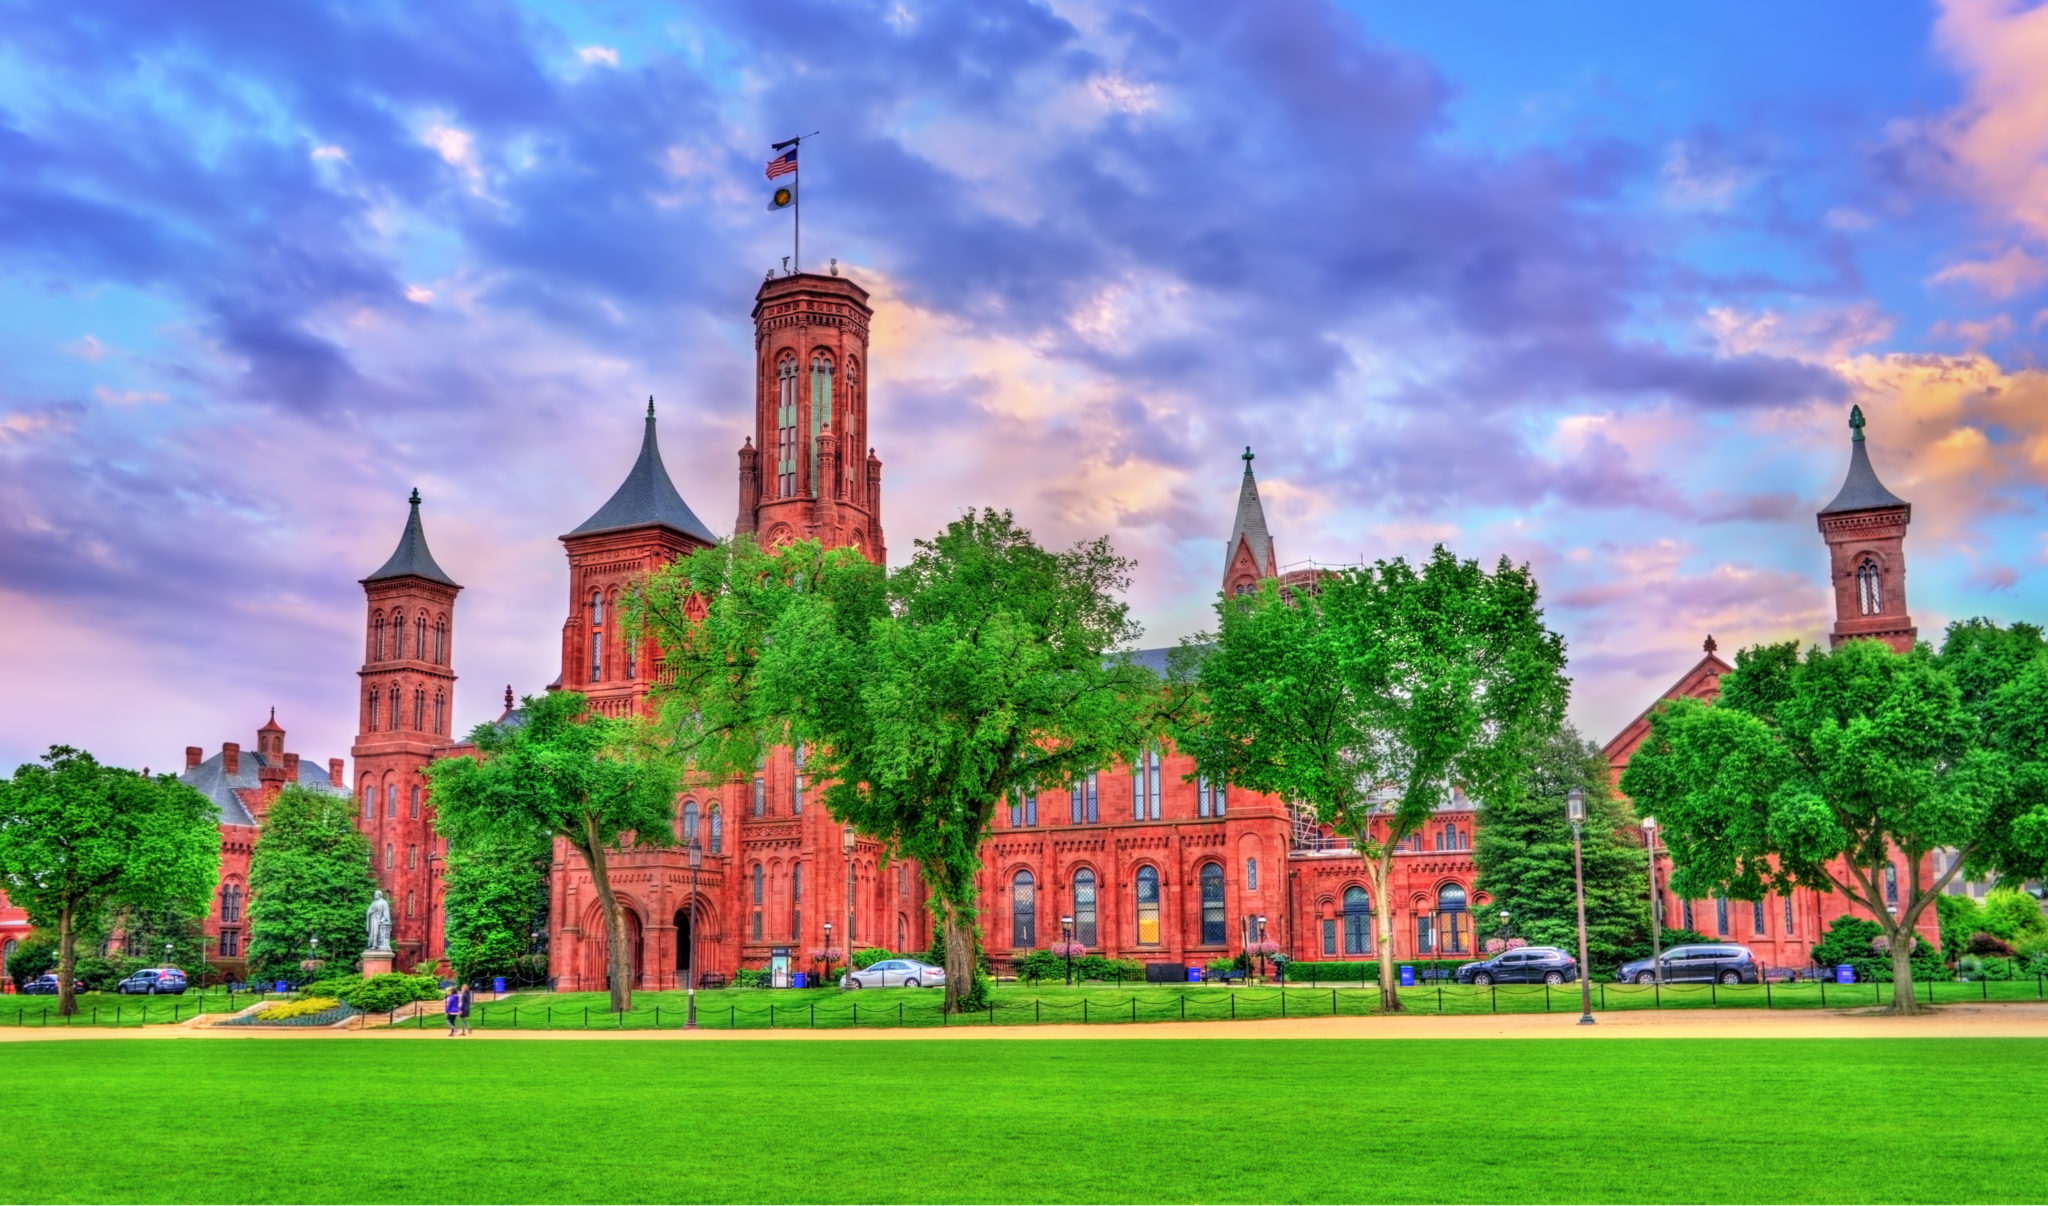 A Complete Guide to the Smithsonian Museums, Galleries, and Gardens on the National Mall